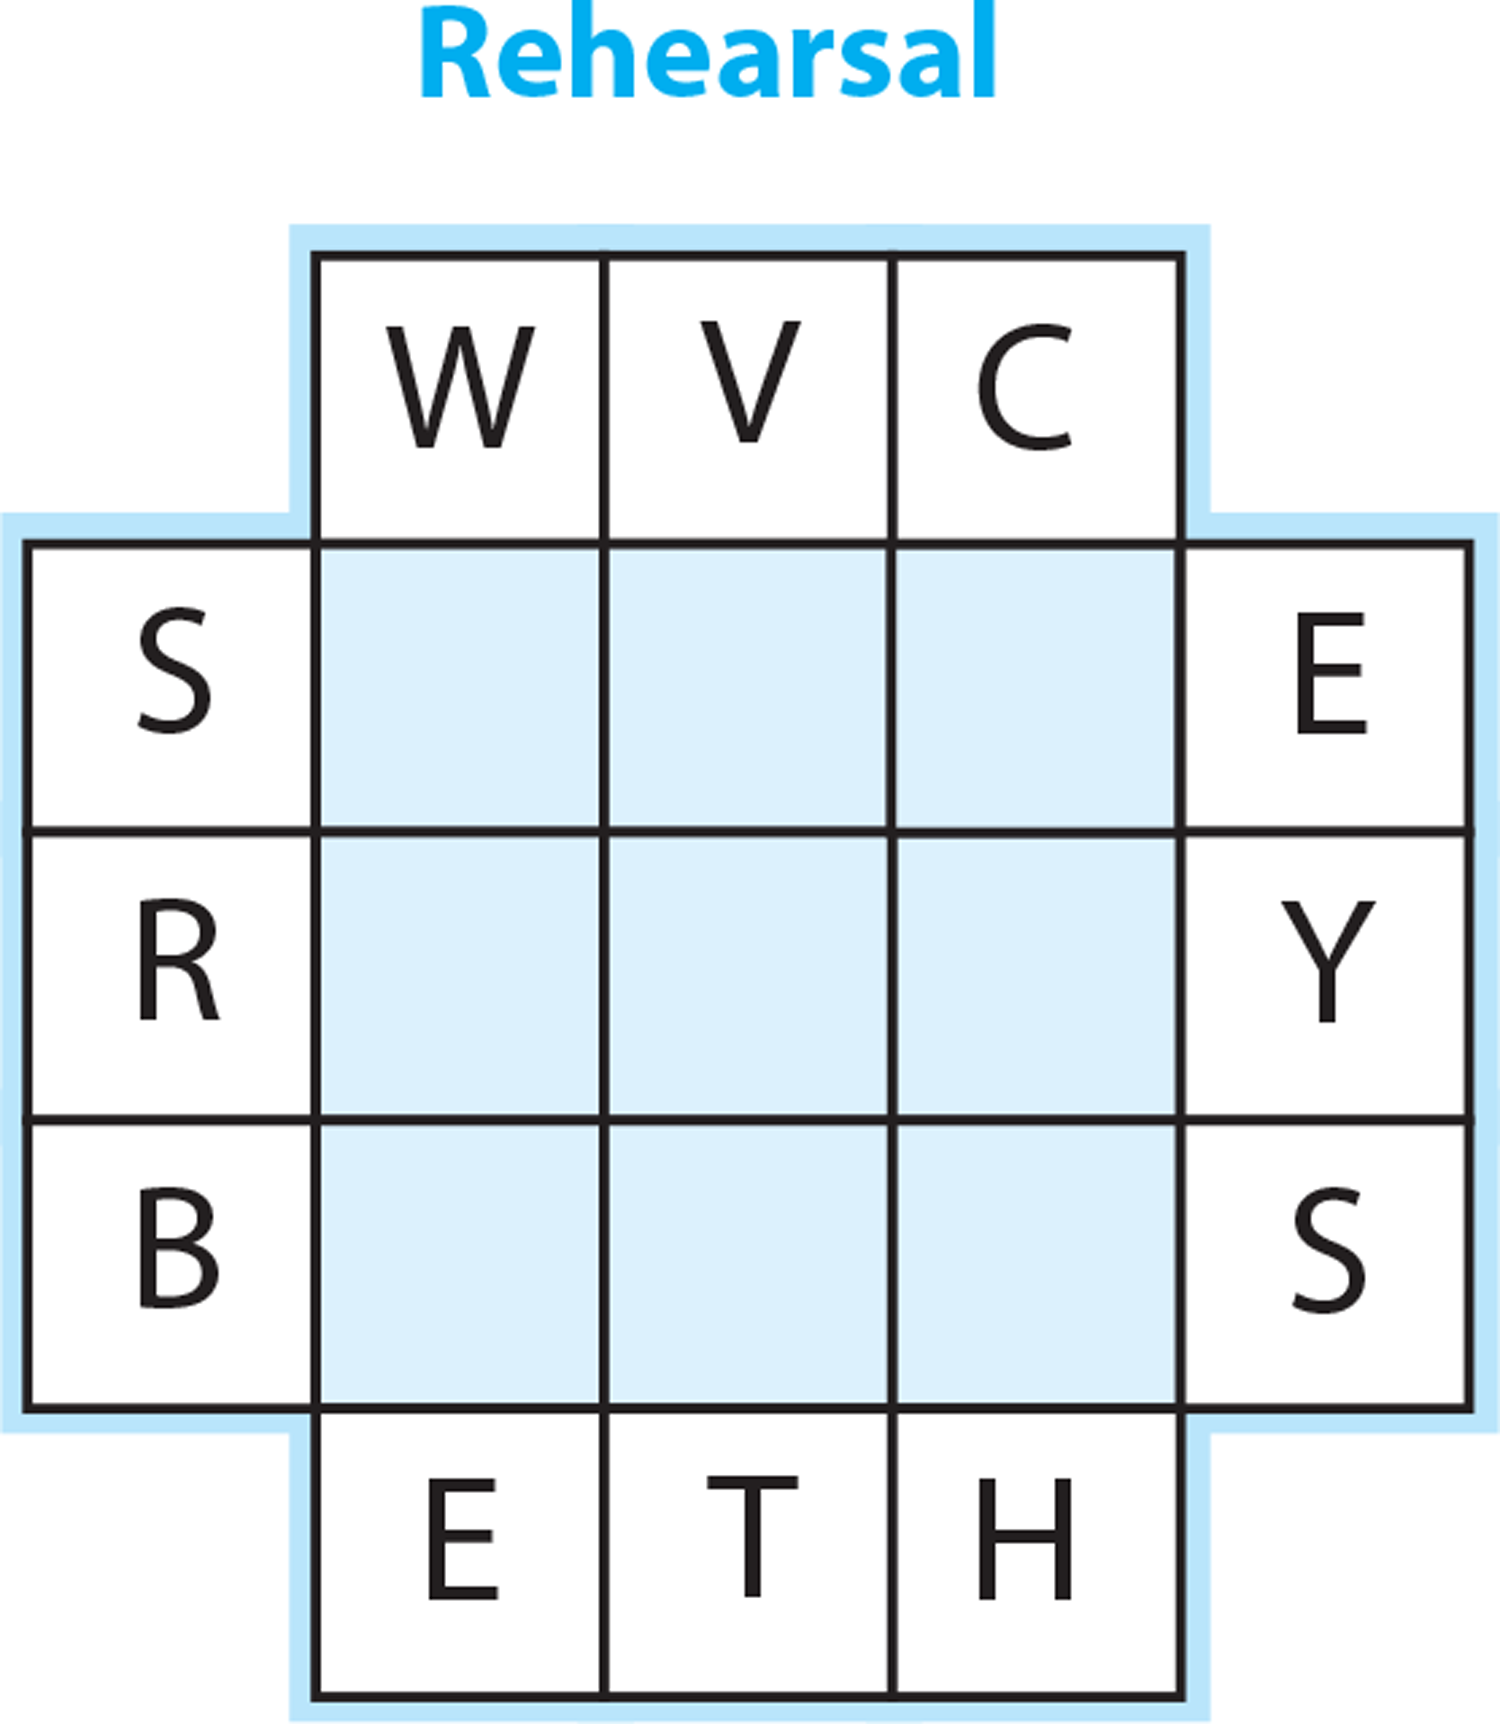 Arrange the letters of the word above each grid into its empty squares to create six five-letter words, three across and three down.